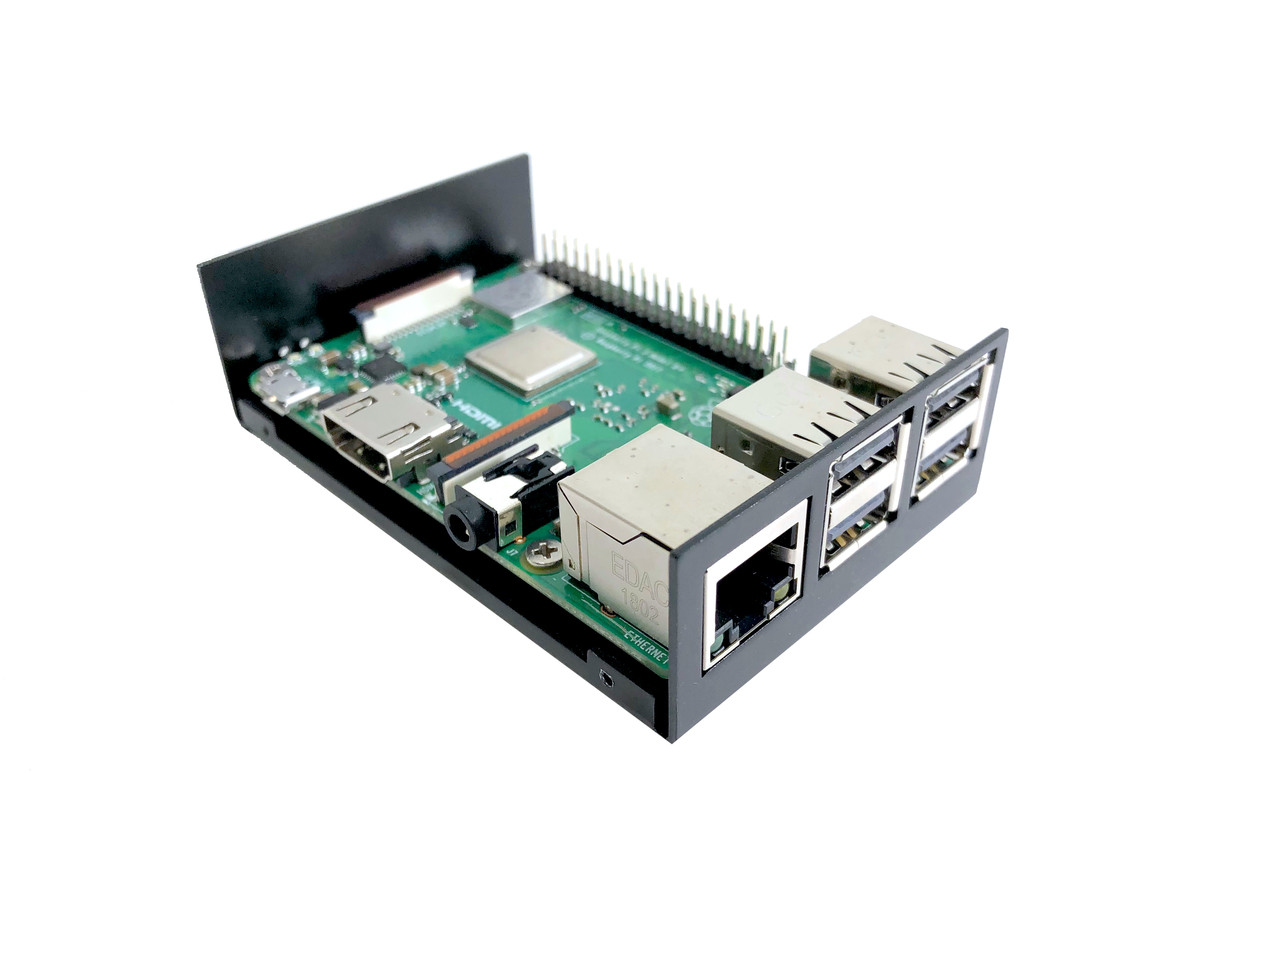 Aluminum Raspberry Pi 3 Model B/B+ Case (Black)